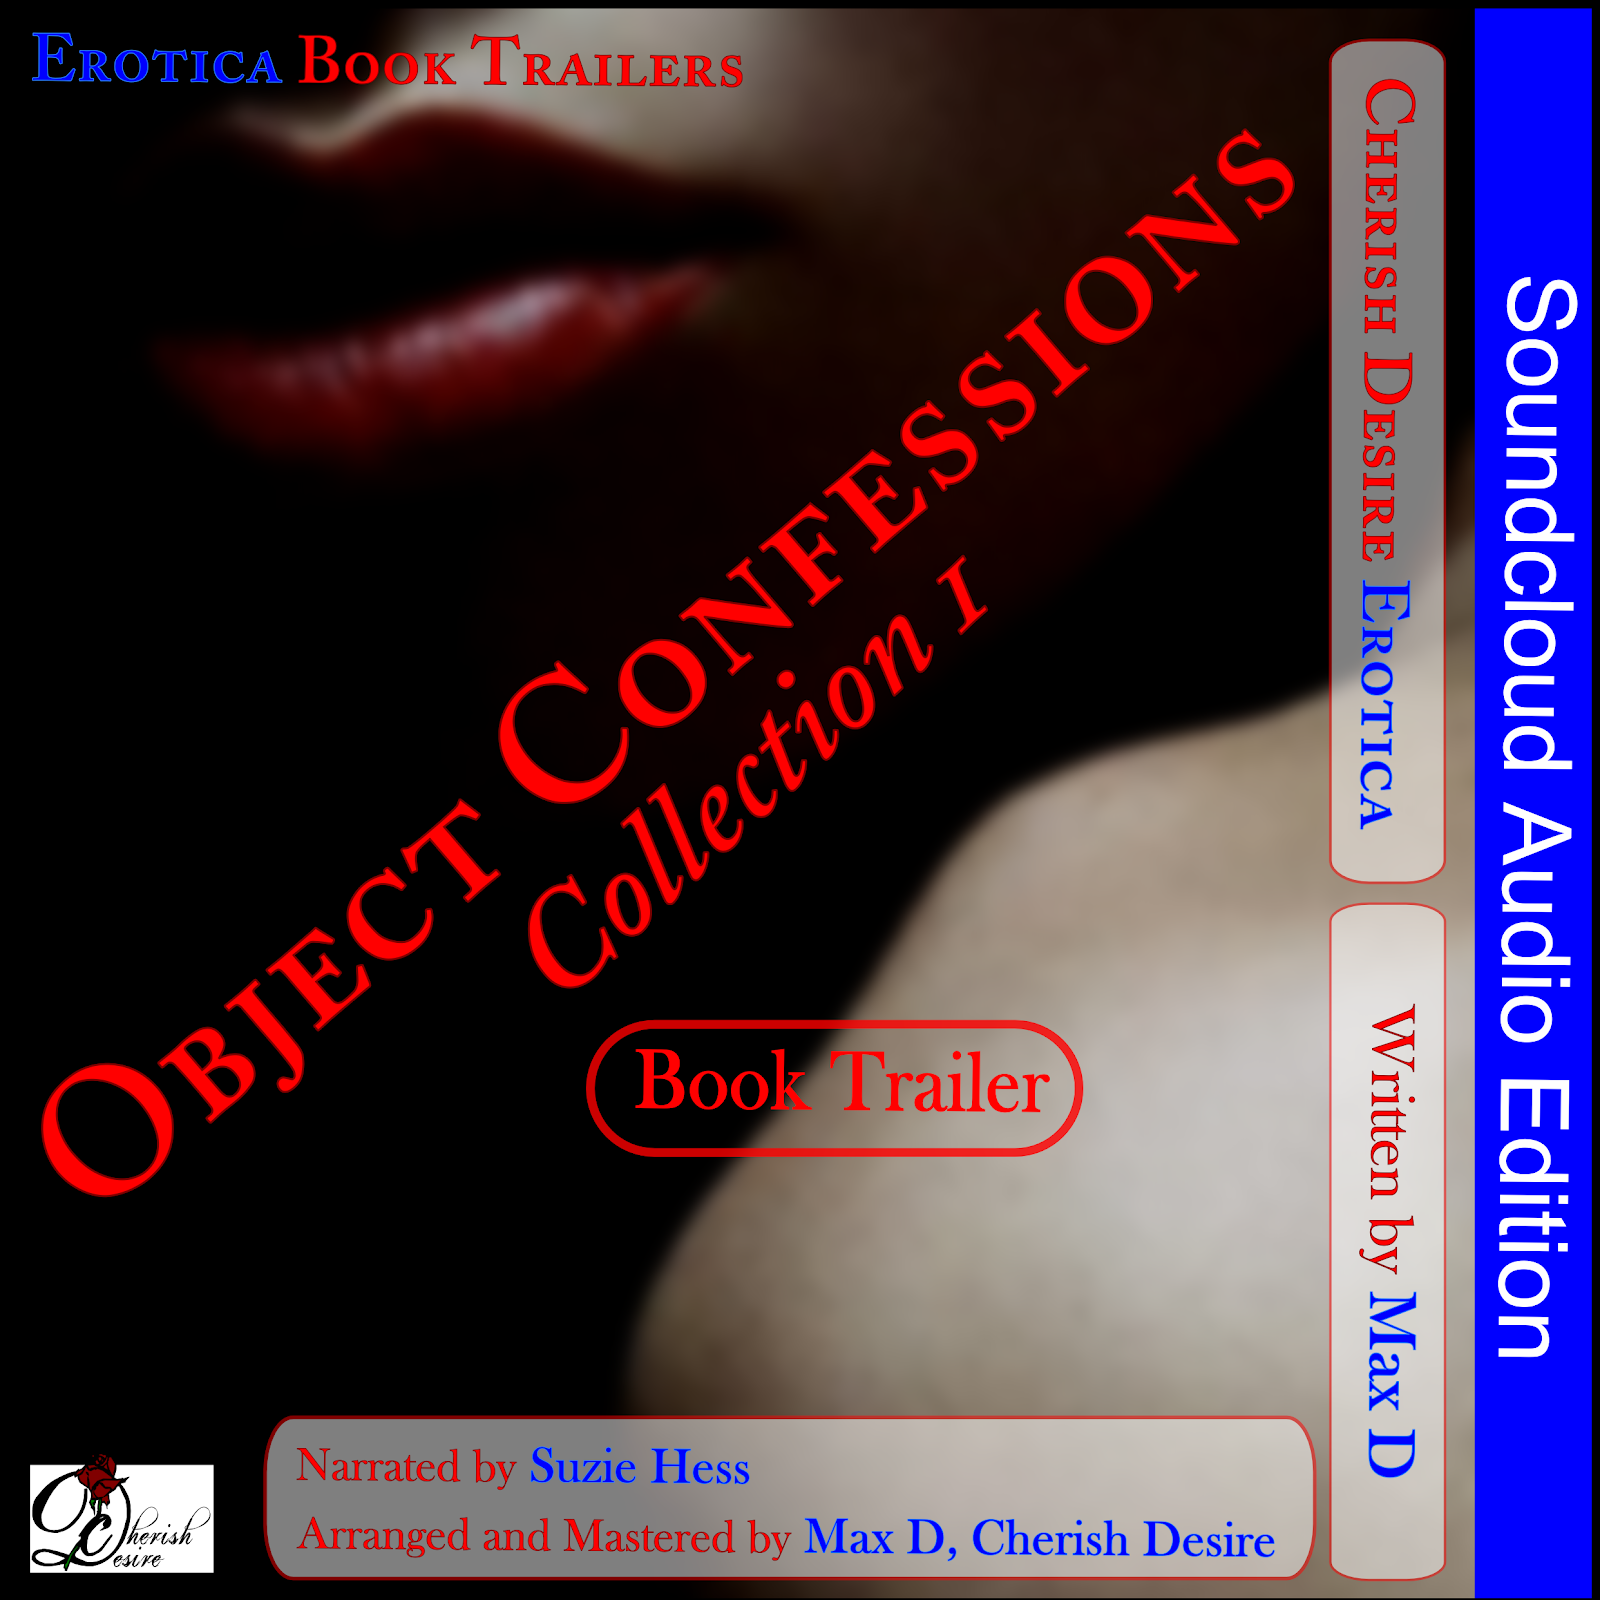 Cherish Desire Singles: Object Confessions Collection 1, Soundcloud Audio Book Trailer, Max D, erotica